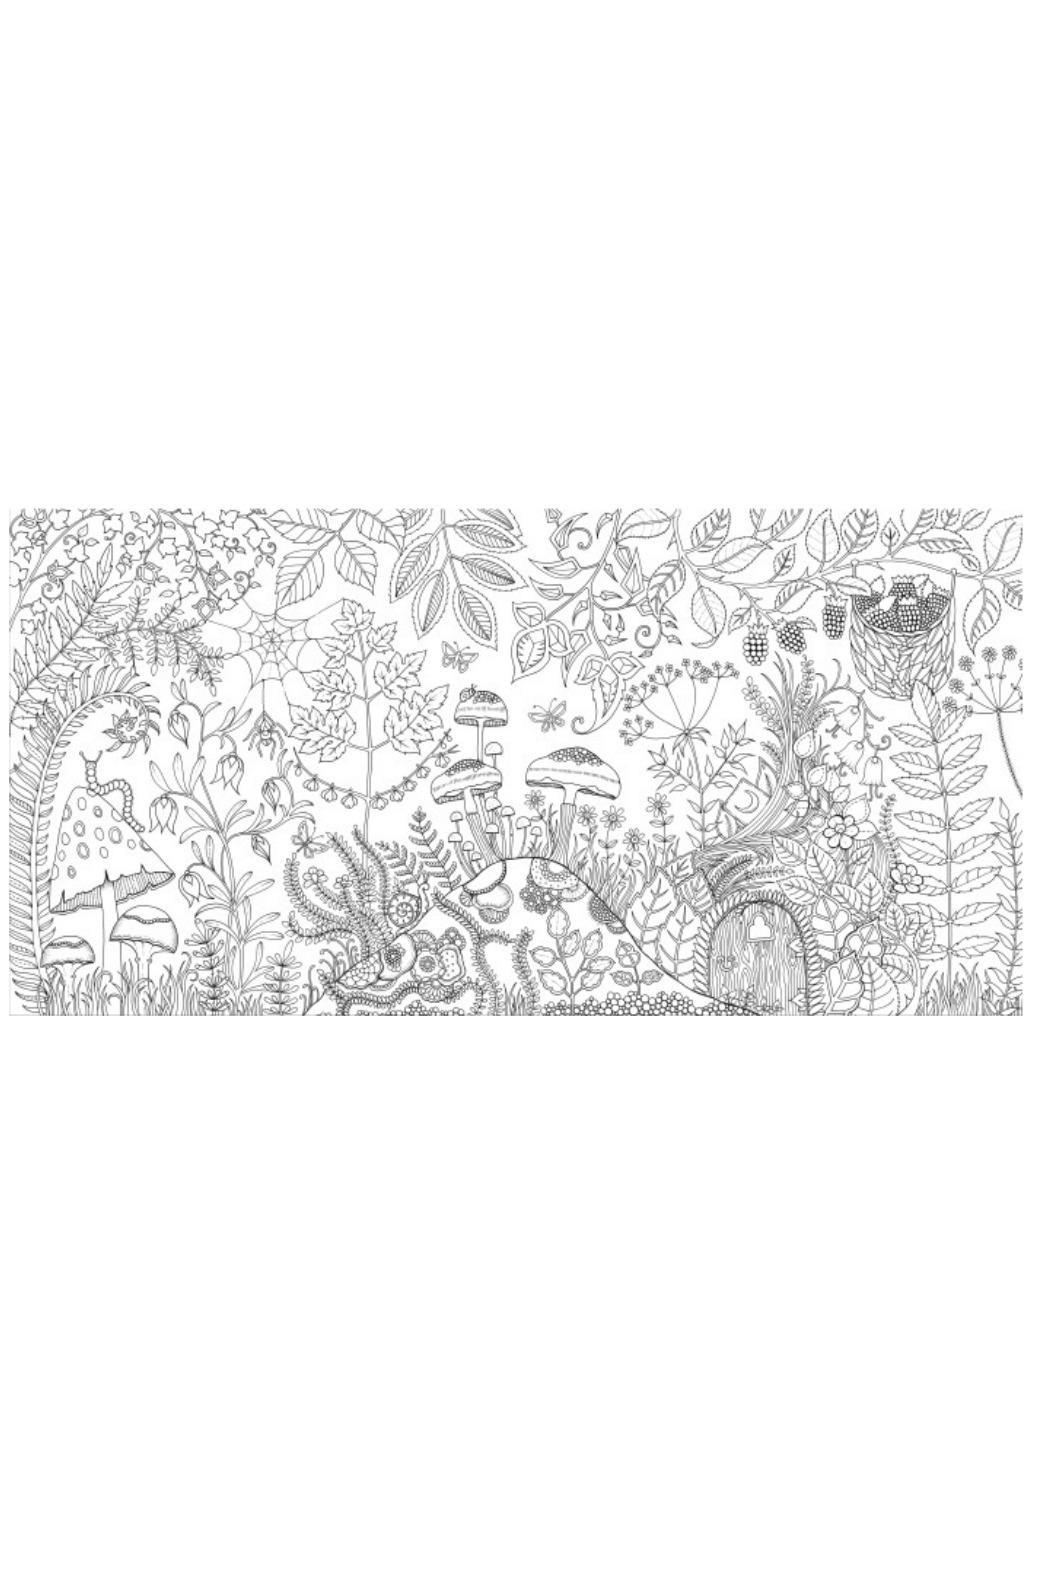 Johanna Basford Enchanted Forest Coloring Book From